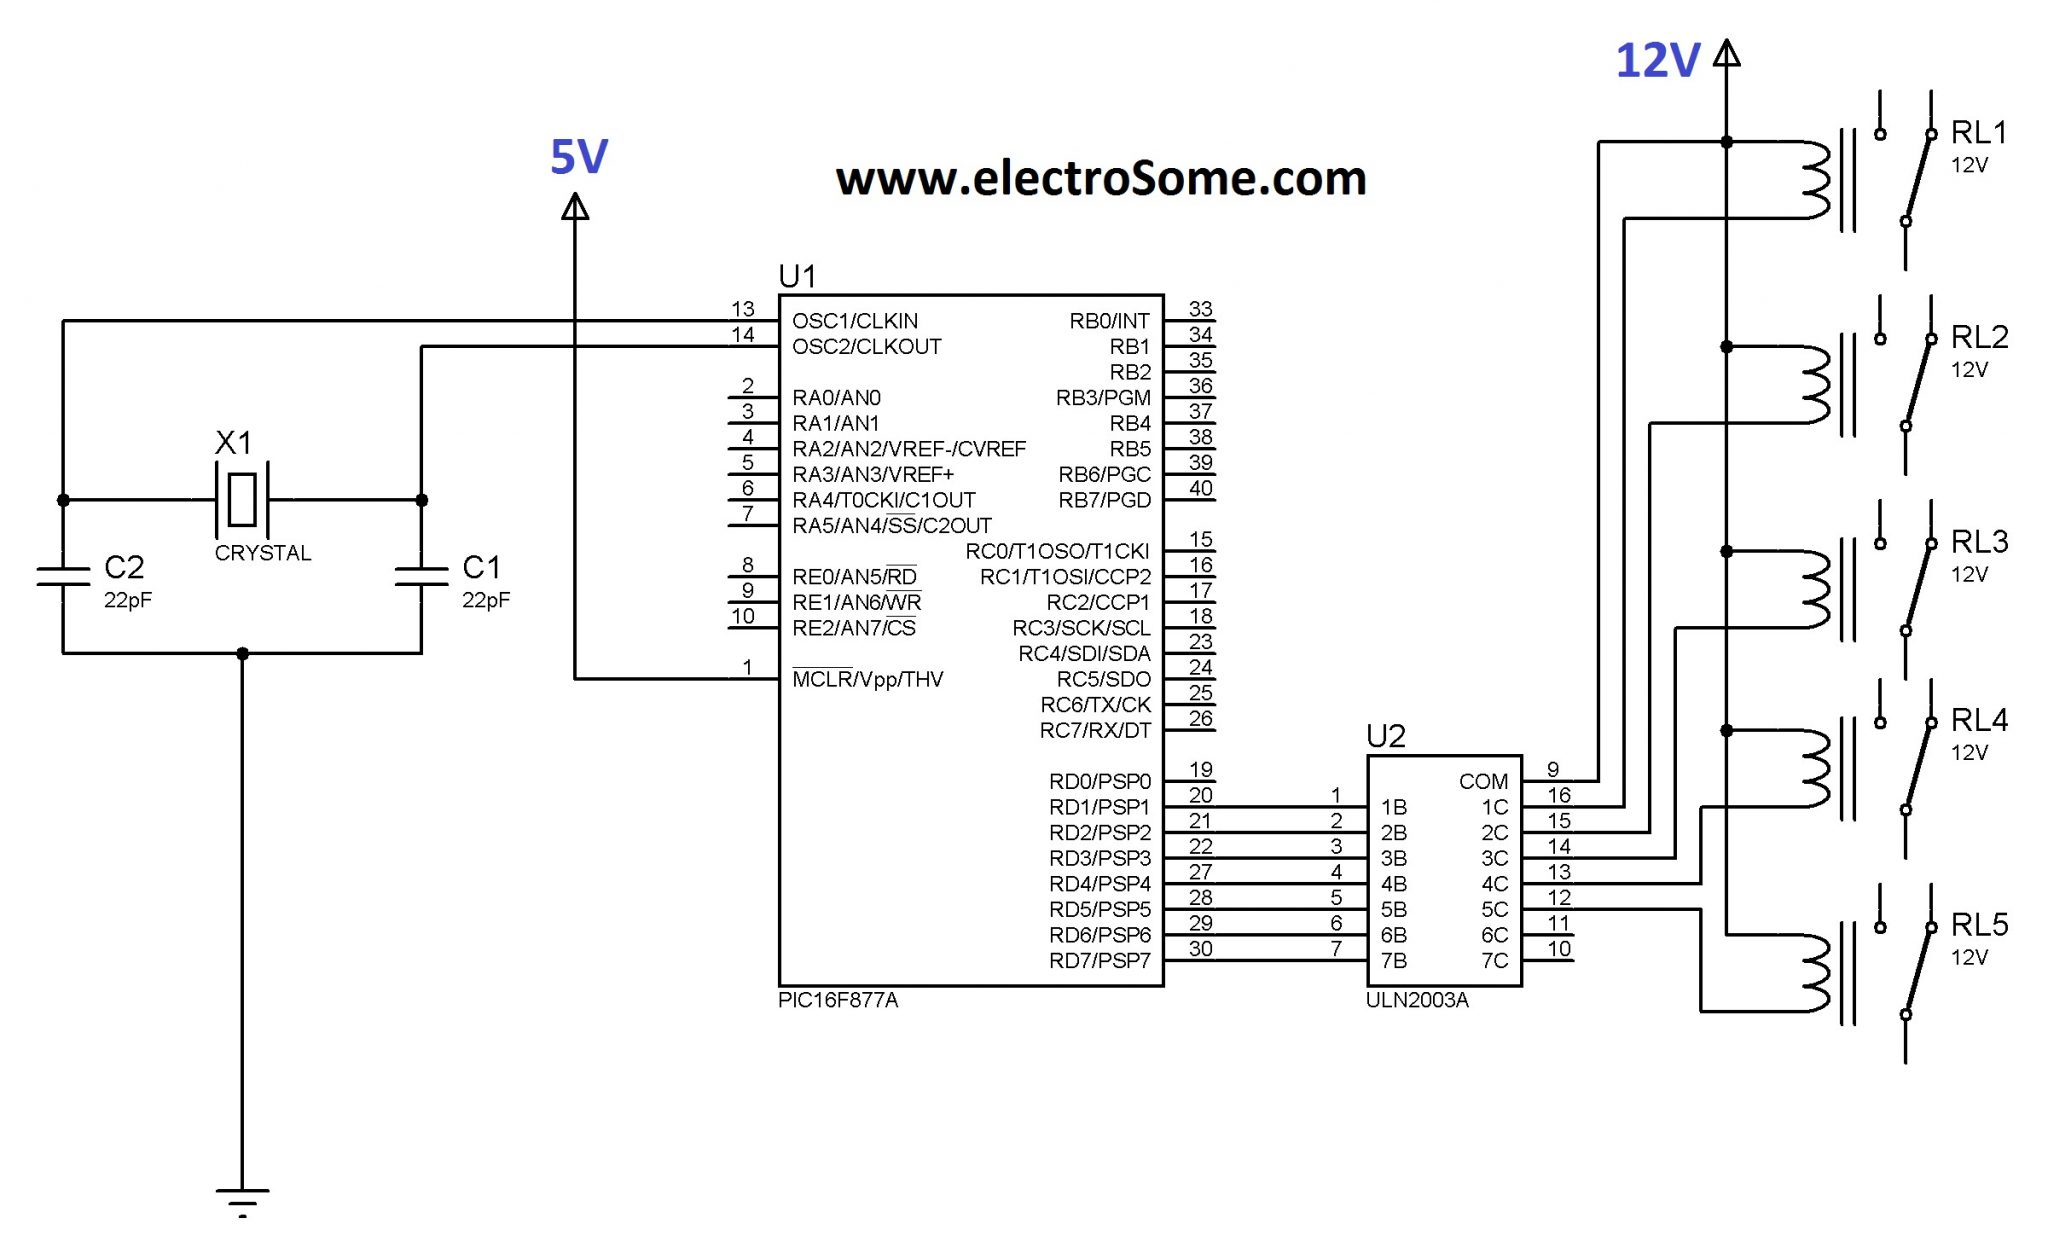 microcontroller relay interface and driver